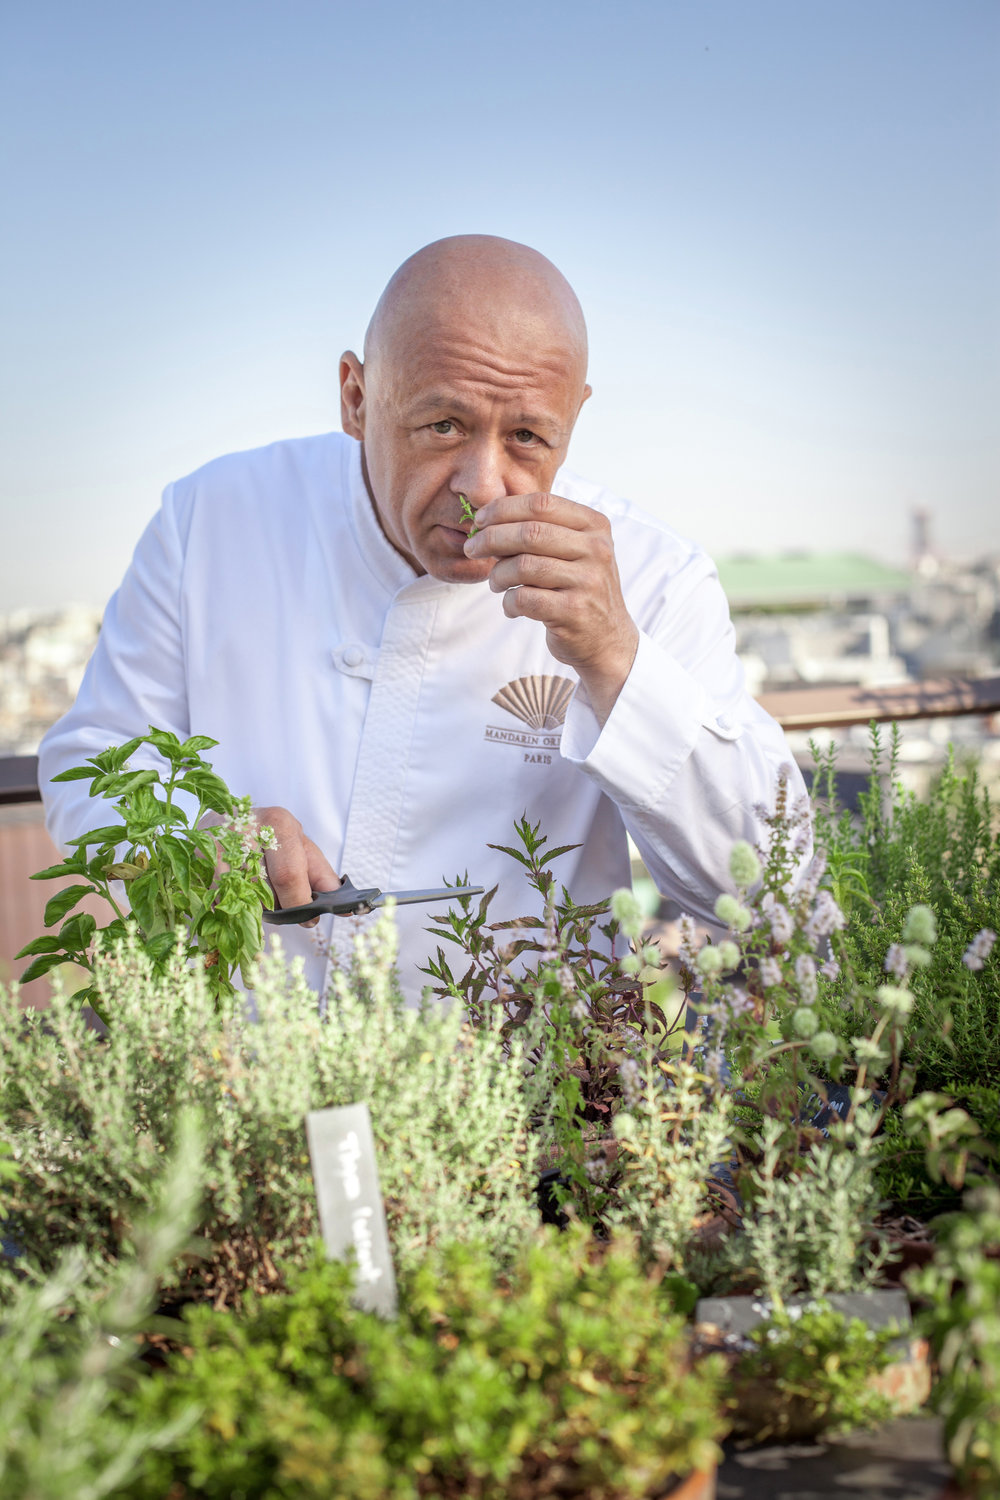 Aromatic Plant Garden / Hotel Mandarin Oriental Paris   Perched on the roof of the Hotel Mandarin Oriental Paris, a new concept with aromatic plants for use by the star chef Thierry Marx was created by the Agency Christophe Gautrand & Associates.